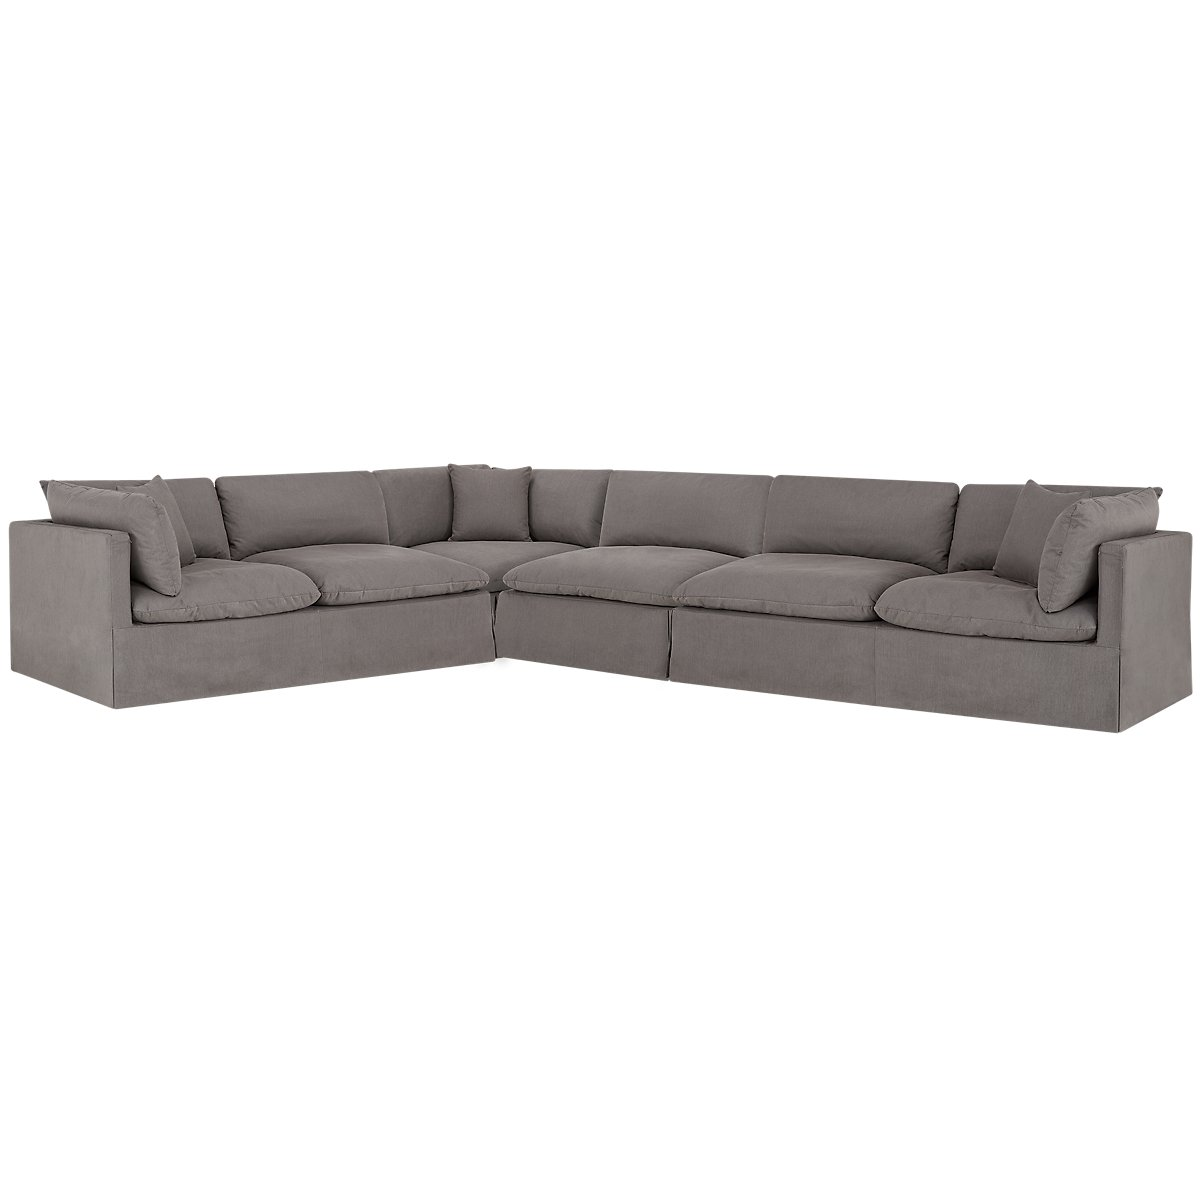 timothy fabric oulton sectional sofa products ts furniture leather sofas gray grey living in pillow